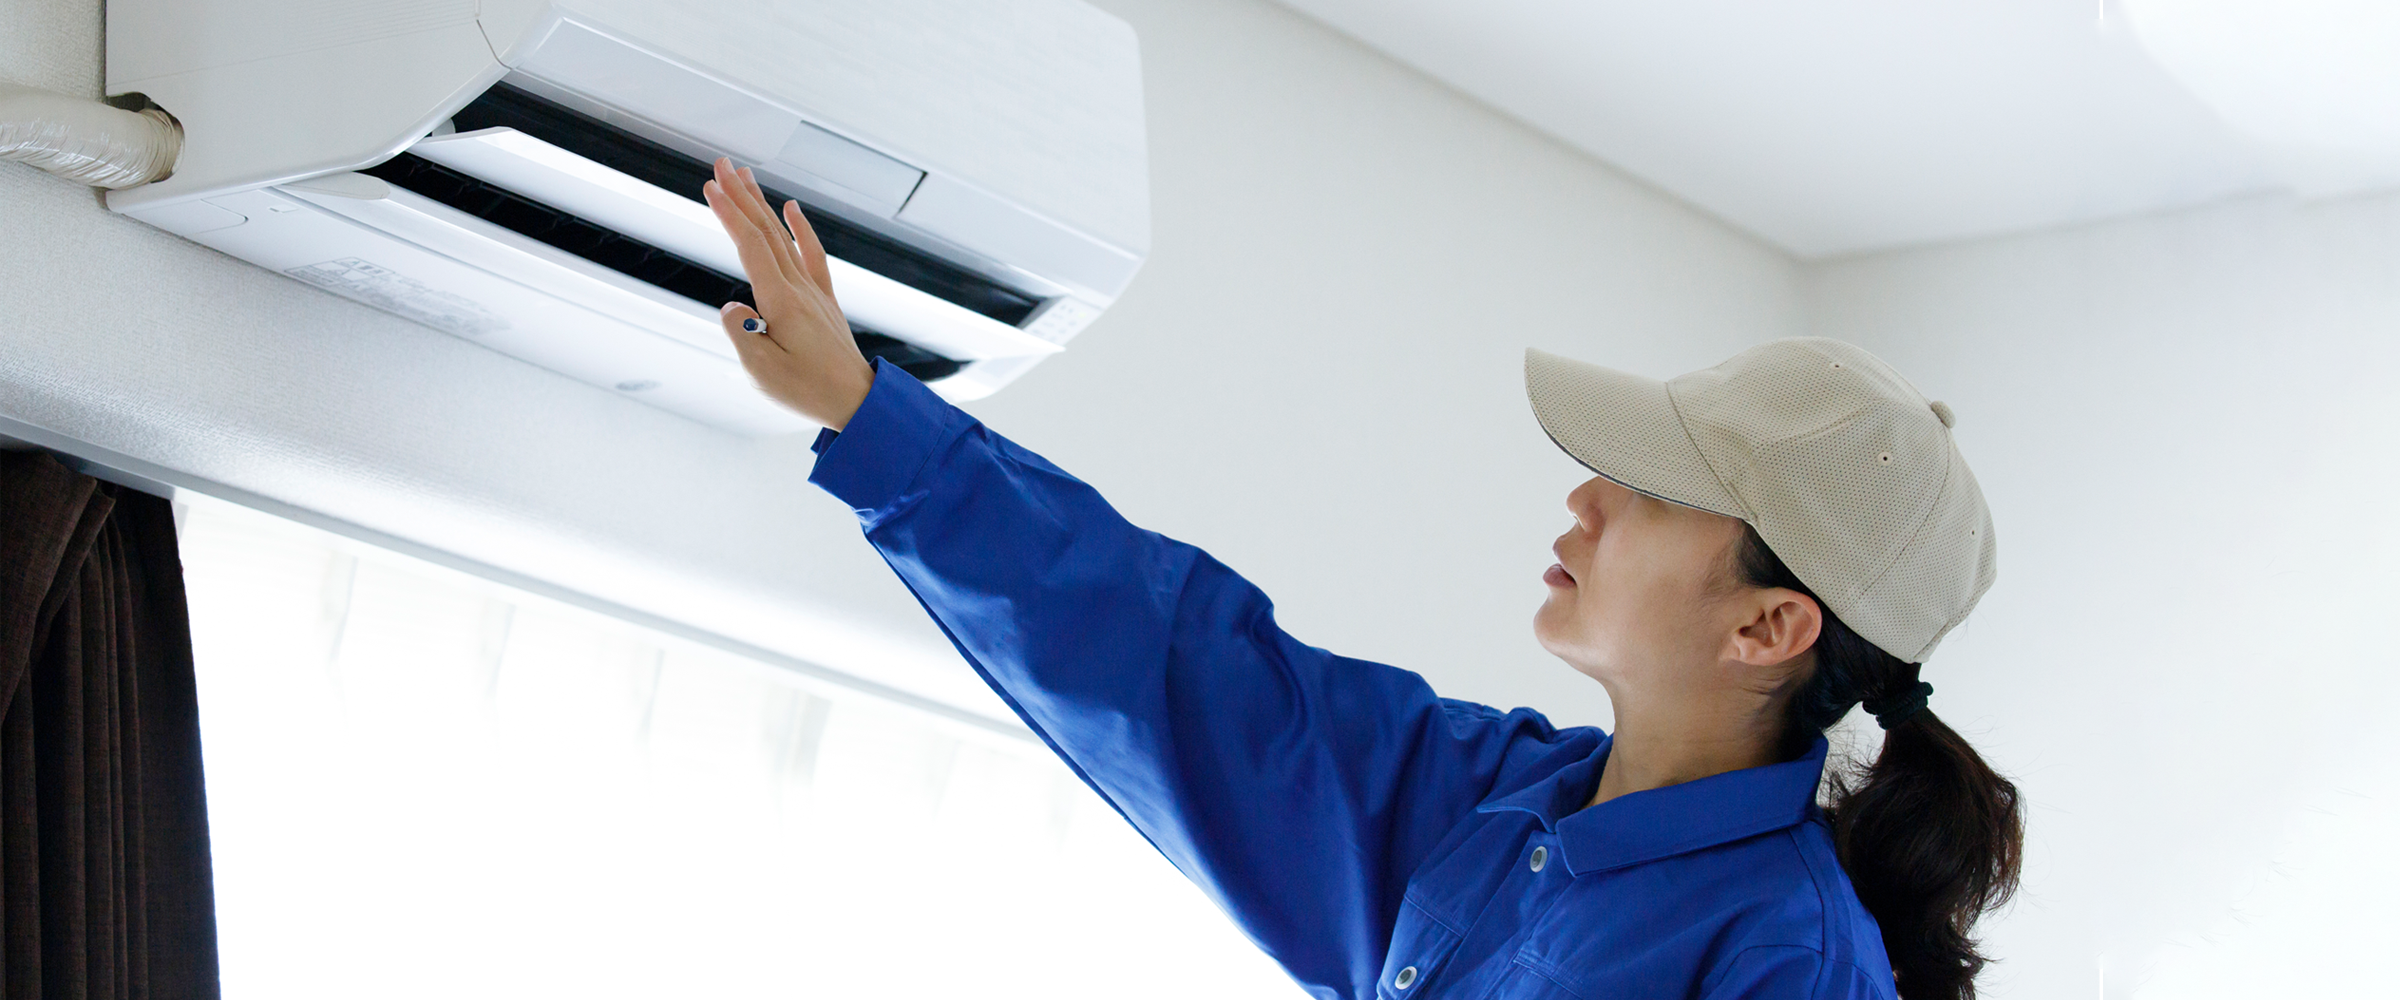 Should You Repair or Replace Your Air Conditioning?